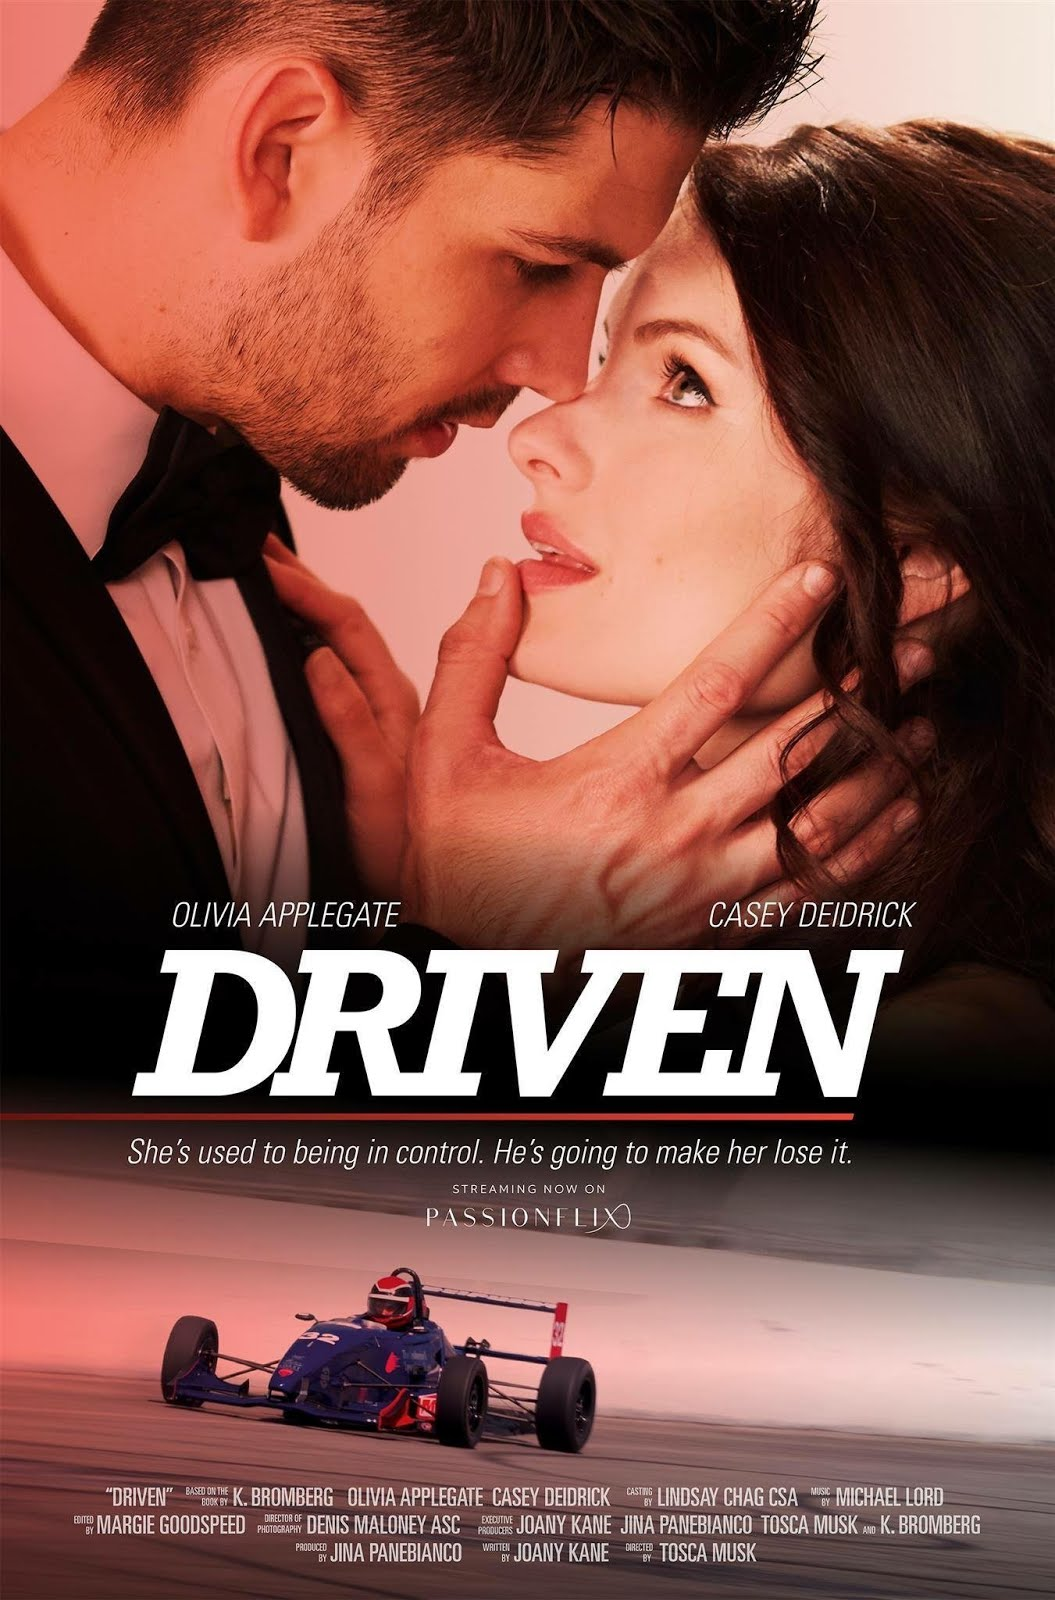 18+ Driven (2018) Hindi Dubbed 720p HDRip 999MB